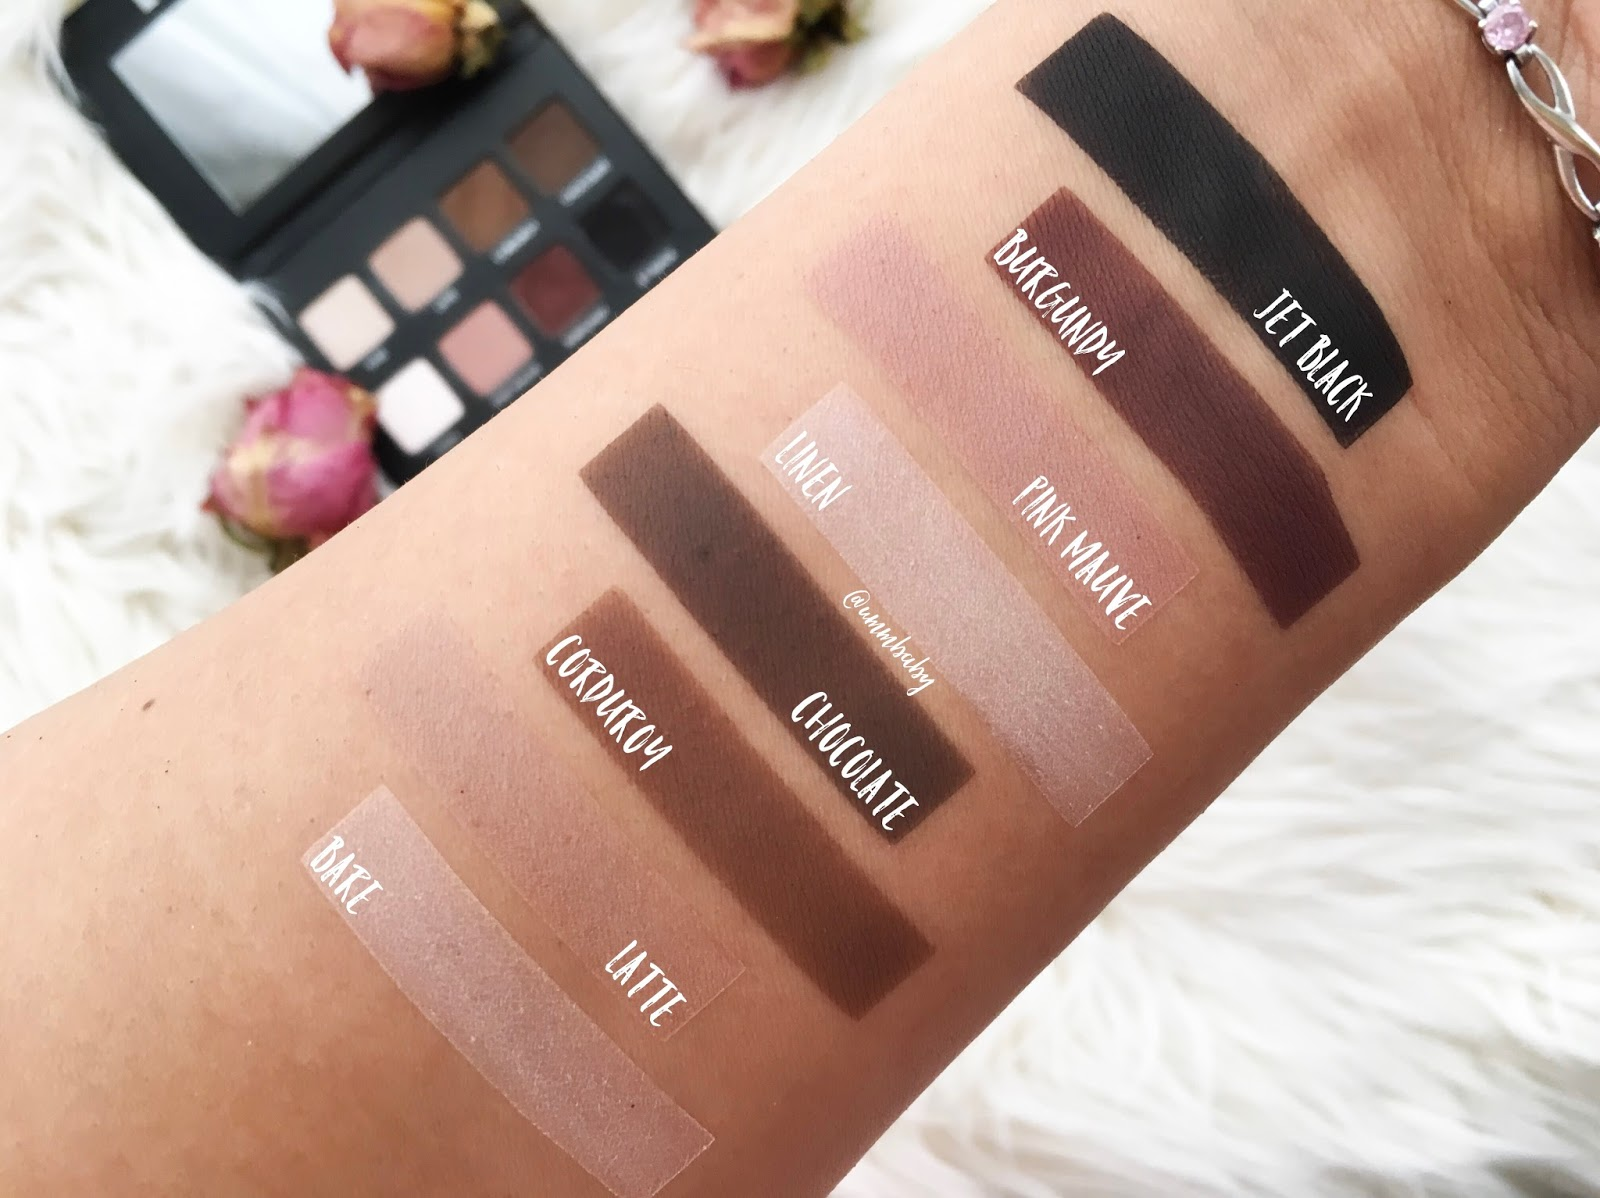 lorac pro matte palette swatches, lorac pro matte eye palette swatches makeup stencil, lorac pro matte swatches, lorac pro matte palette medium skin nc40 swatches, swatch perfect uk swatches